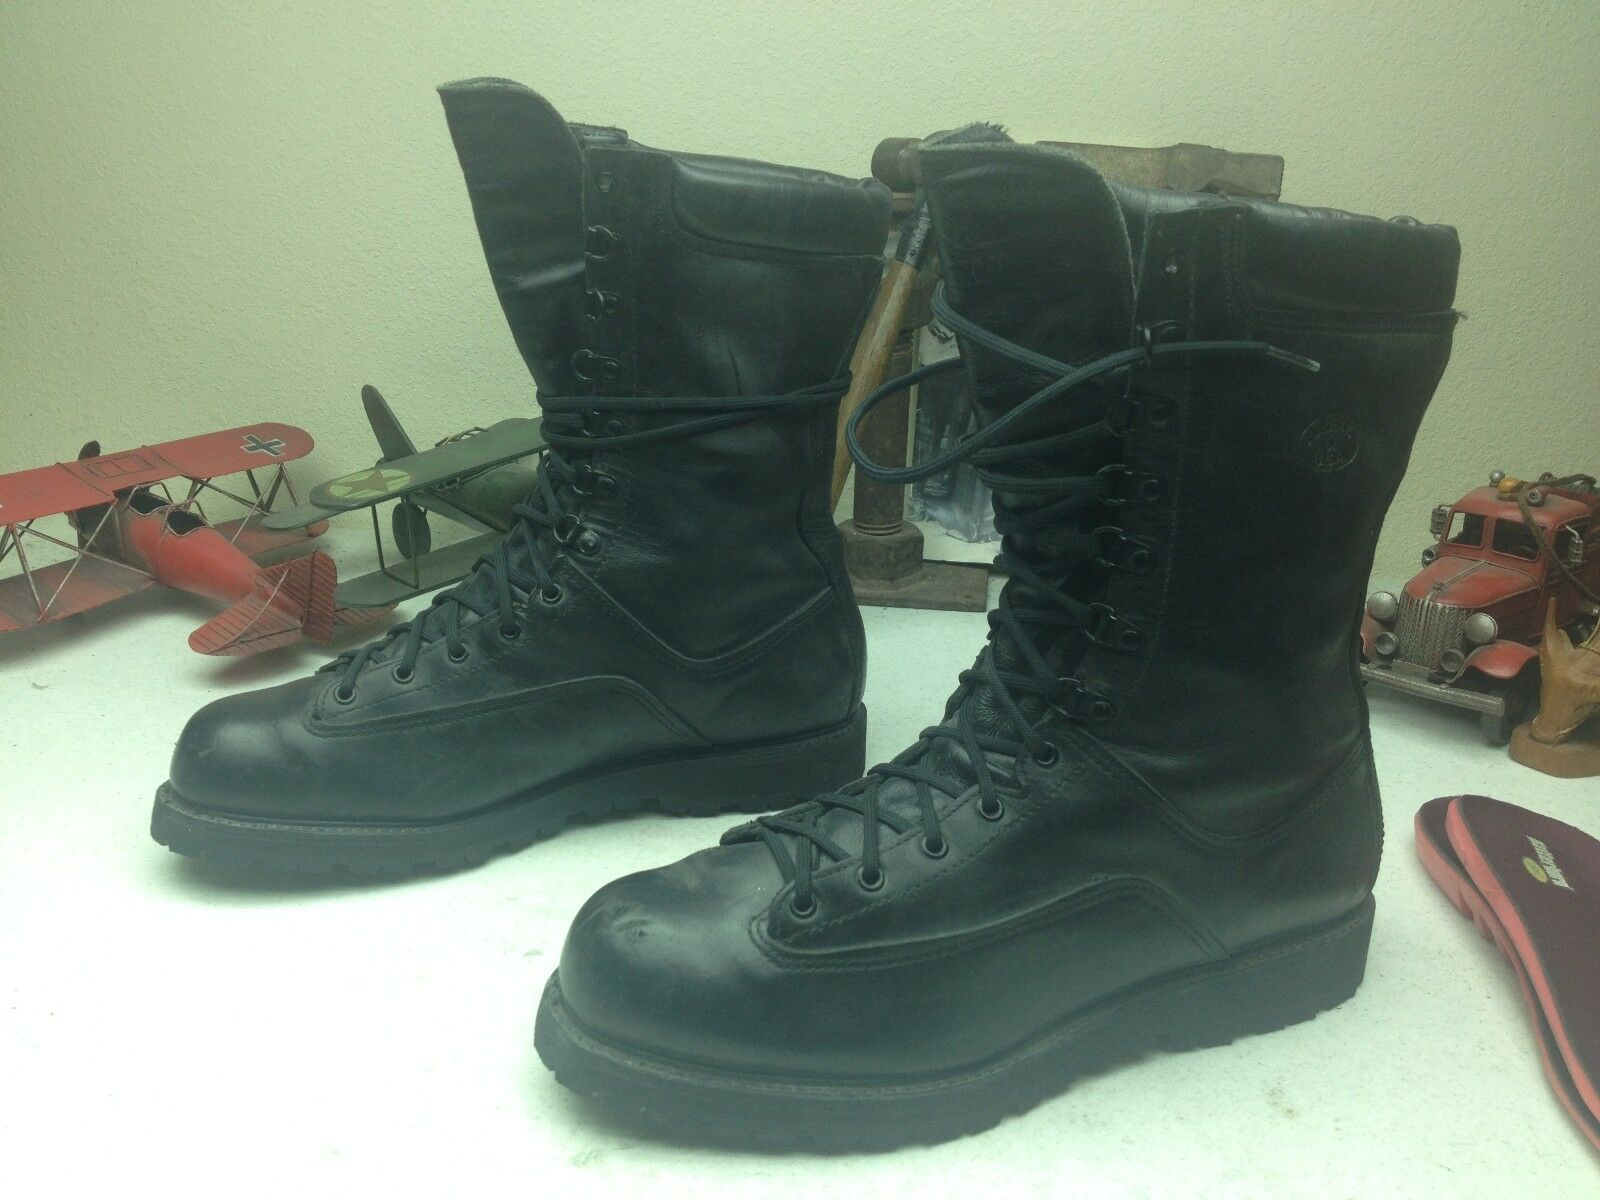 MATTERHORN MILITARY USA schwarz schwarz schwarz LEATHER LACE UP ENGINEER BOSS ARMY Stiefel 12.5 W fb9085